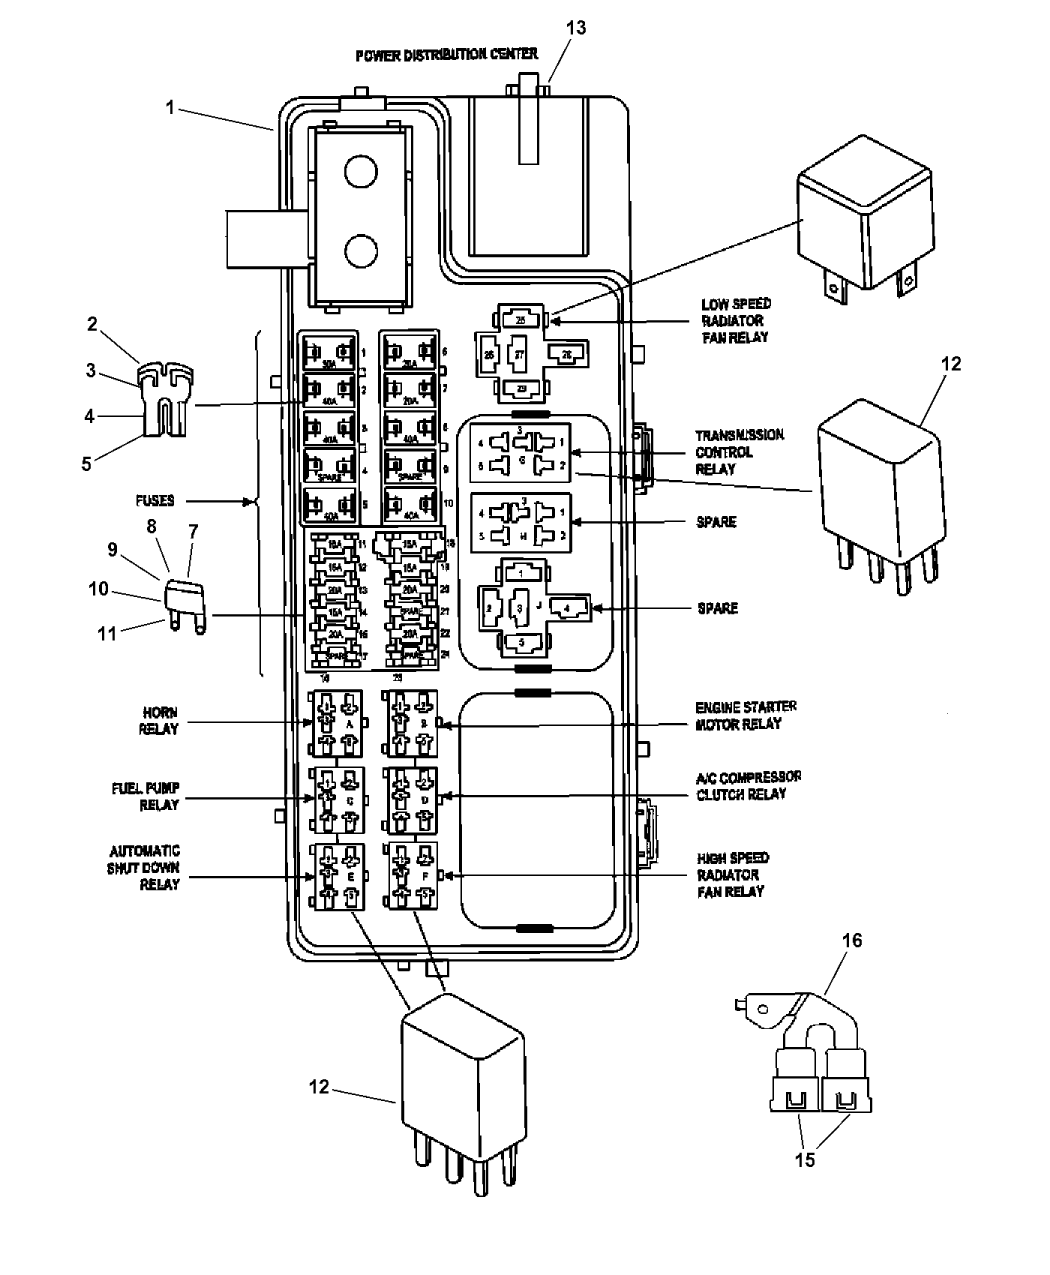 chrysler pt cruiser fuel filter location wiring library Latching Relay Circuit Diagram 2006 chrysler pt cruiser relays, fuses power distribution center